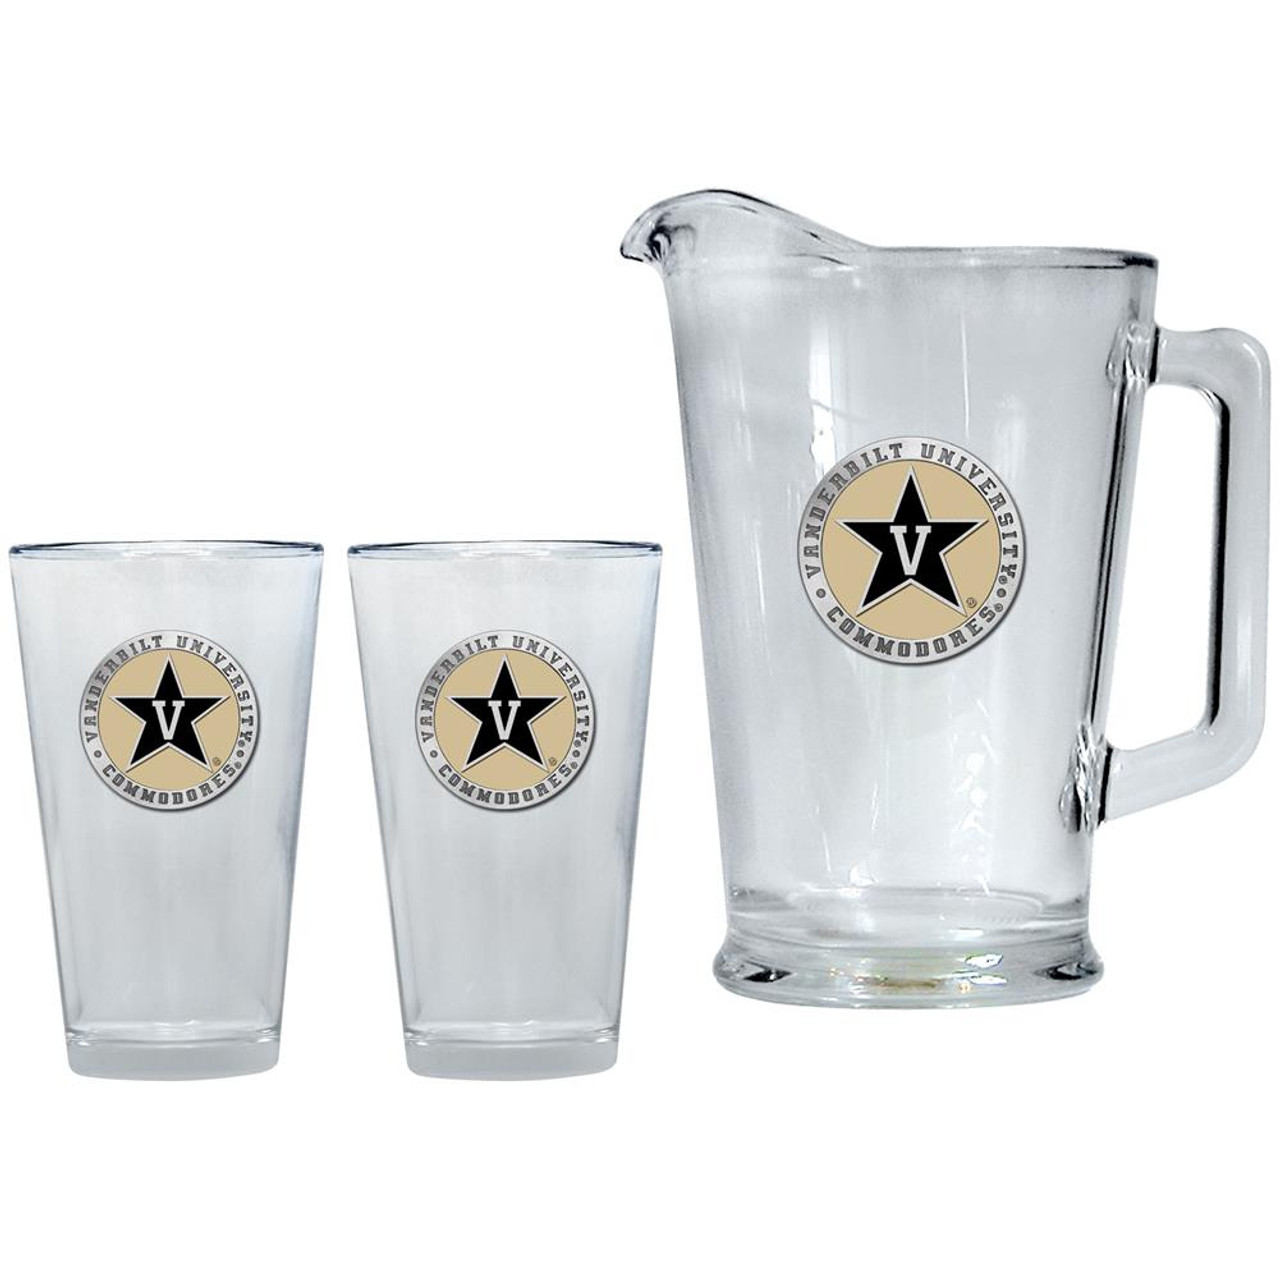 Vanderbilt University Vandy Pitcher and 2 Pint Glass Set Beer Set